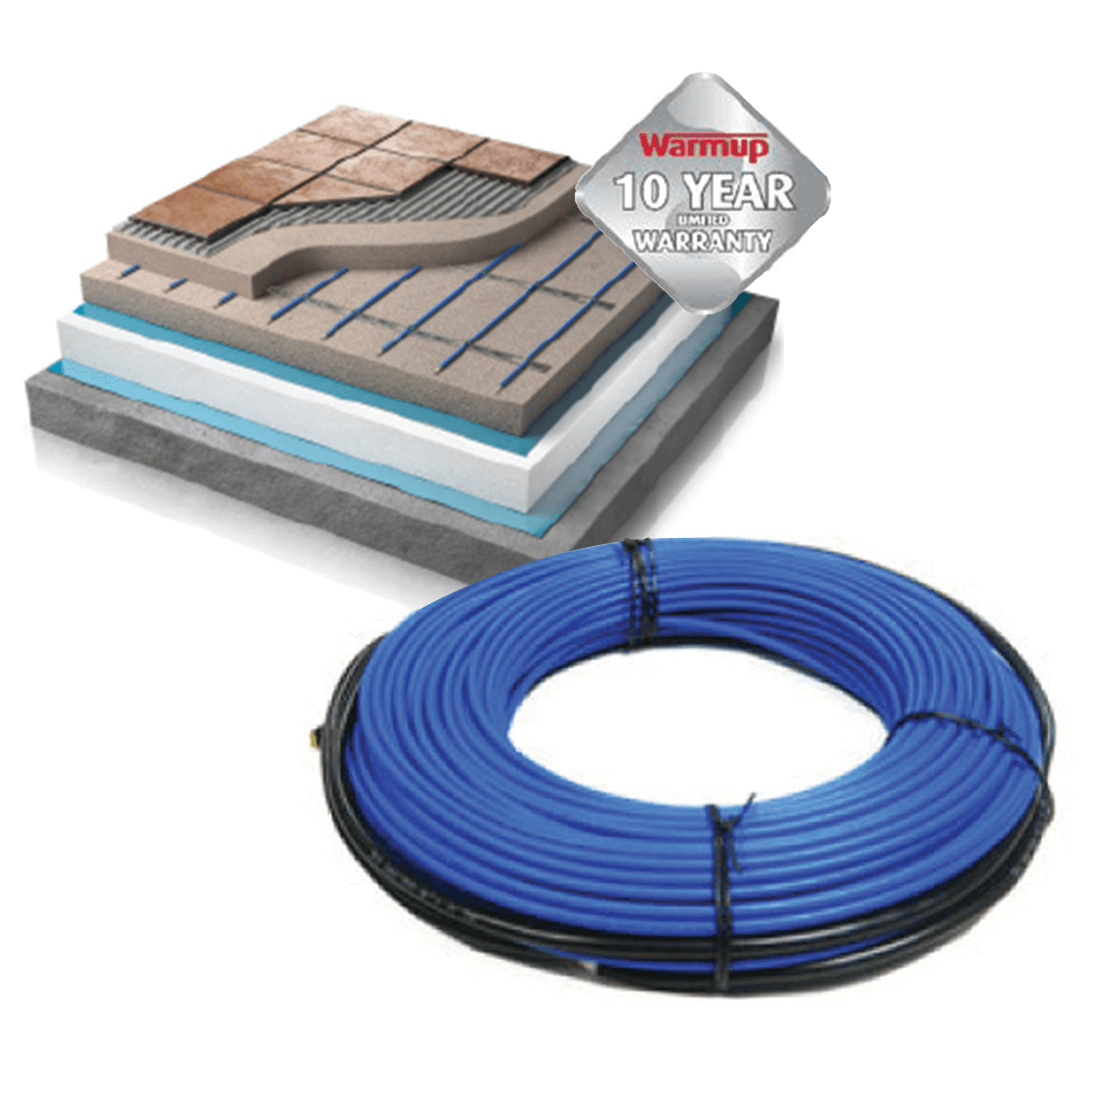 Warmup® Inscreed Cable Systems